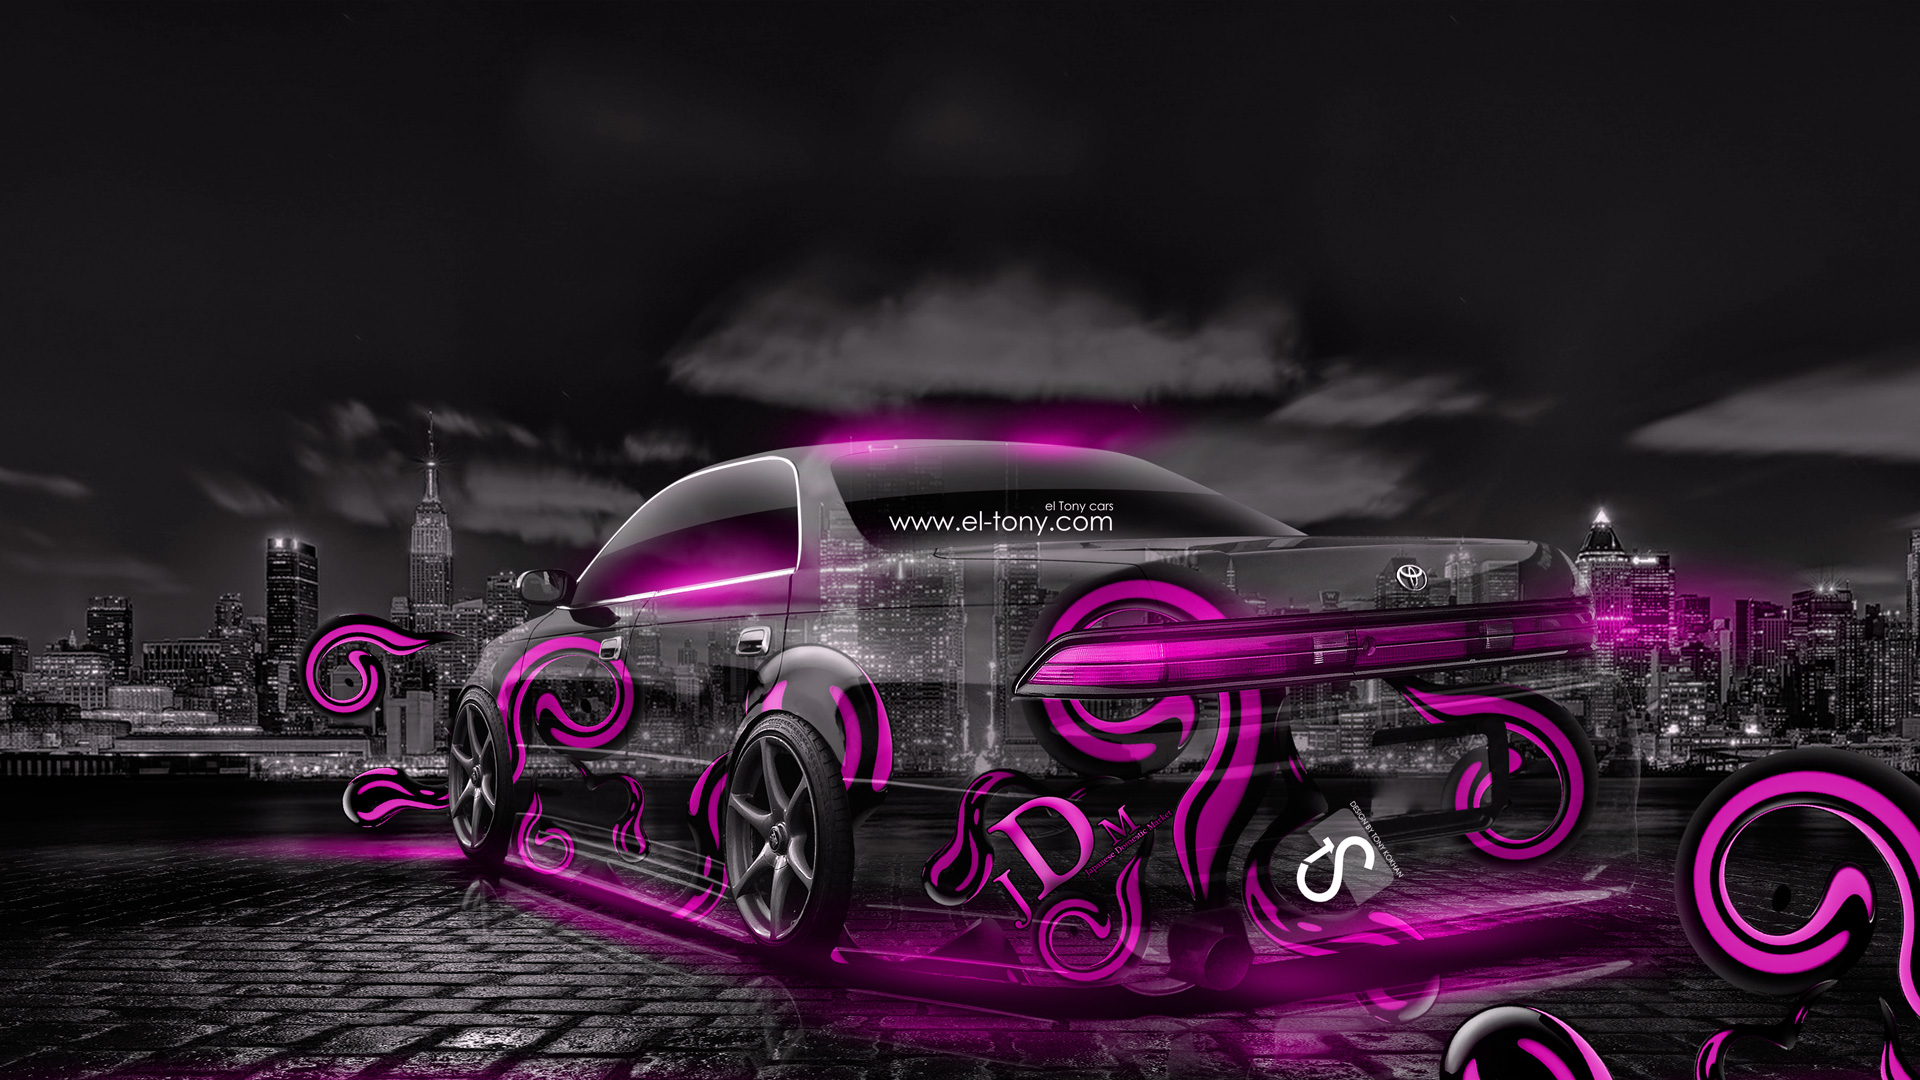 Gentil Toyota Mark2 JZX90 JDM Effects Pink Crystal City